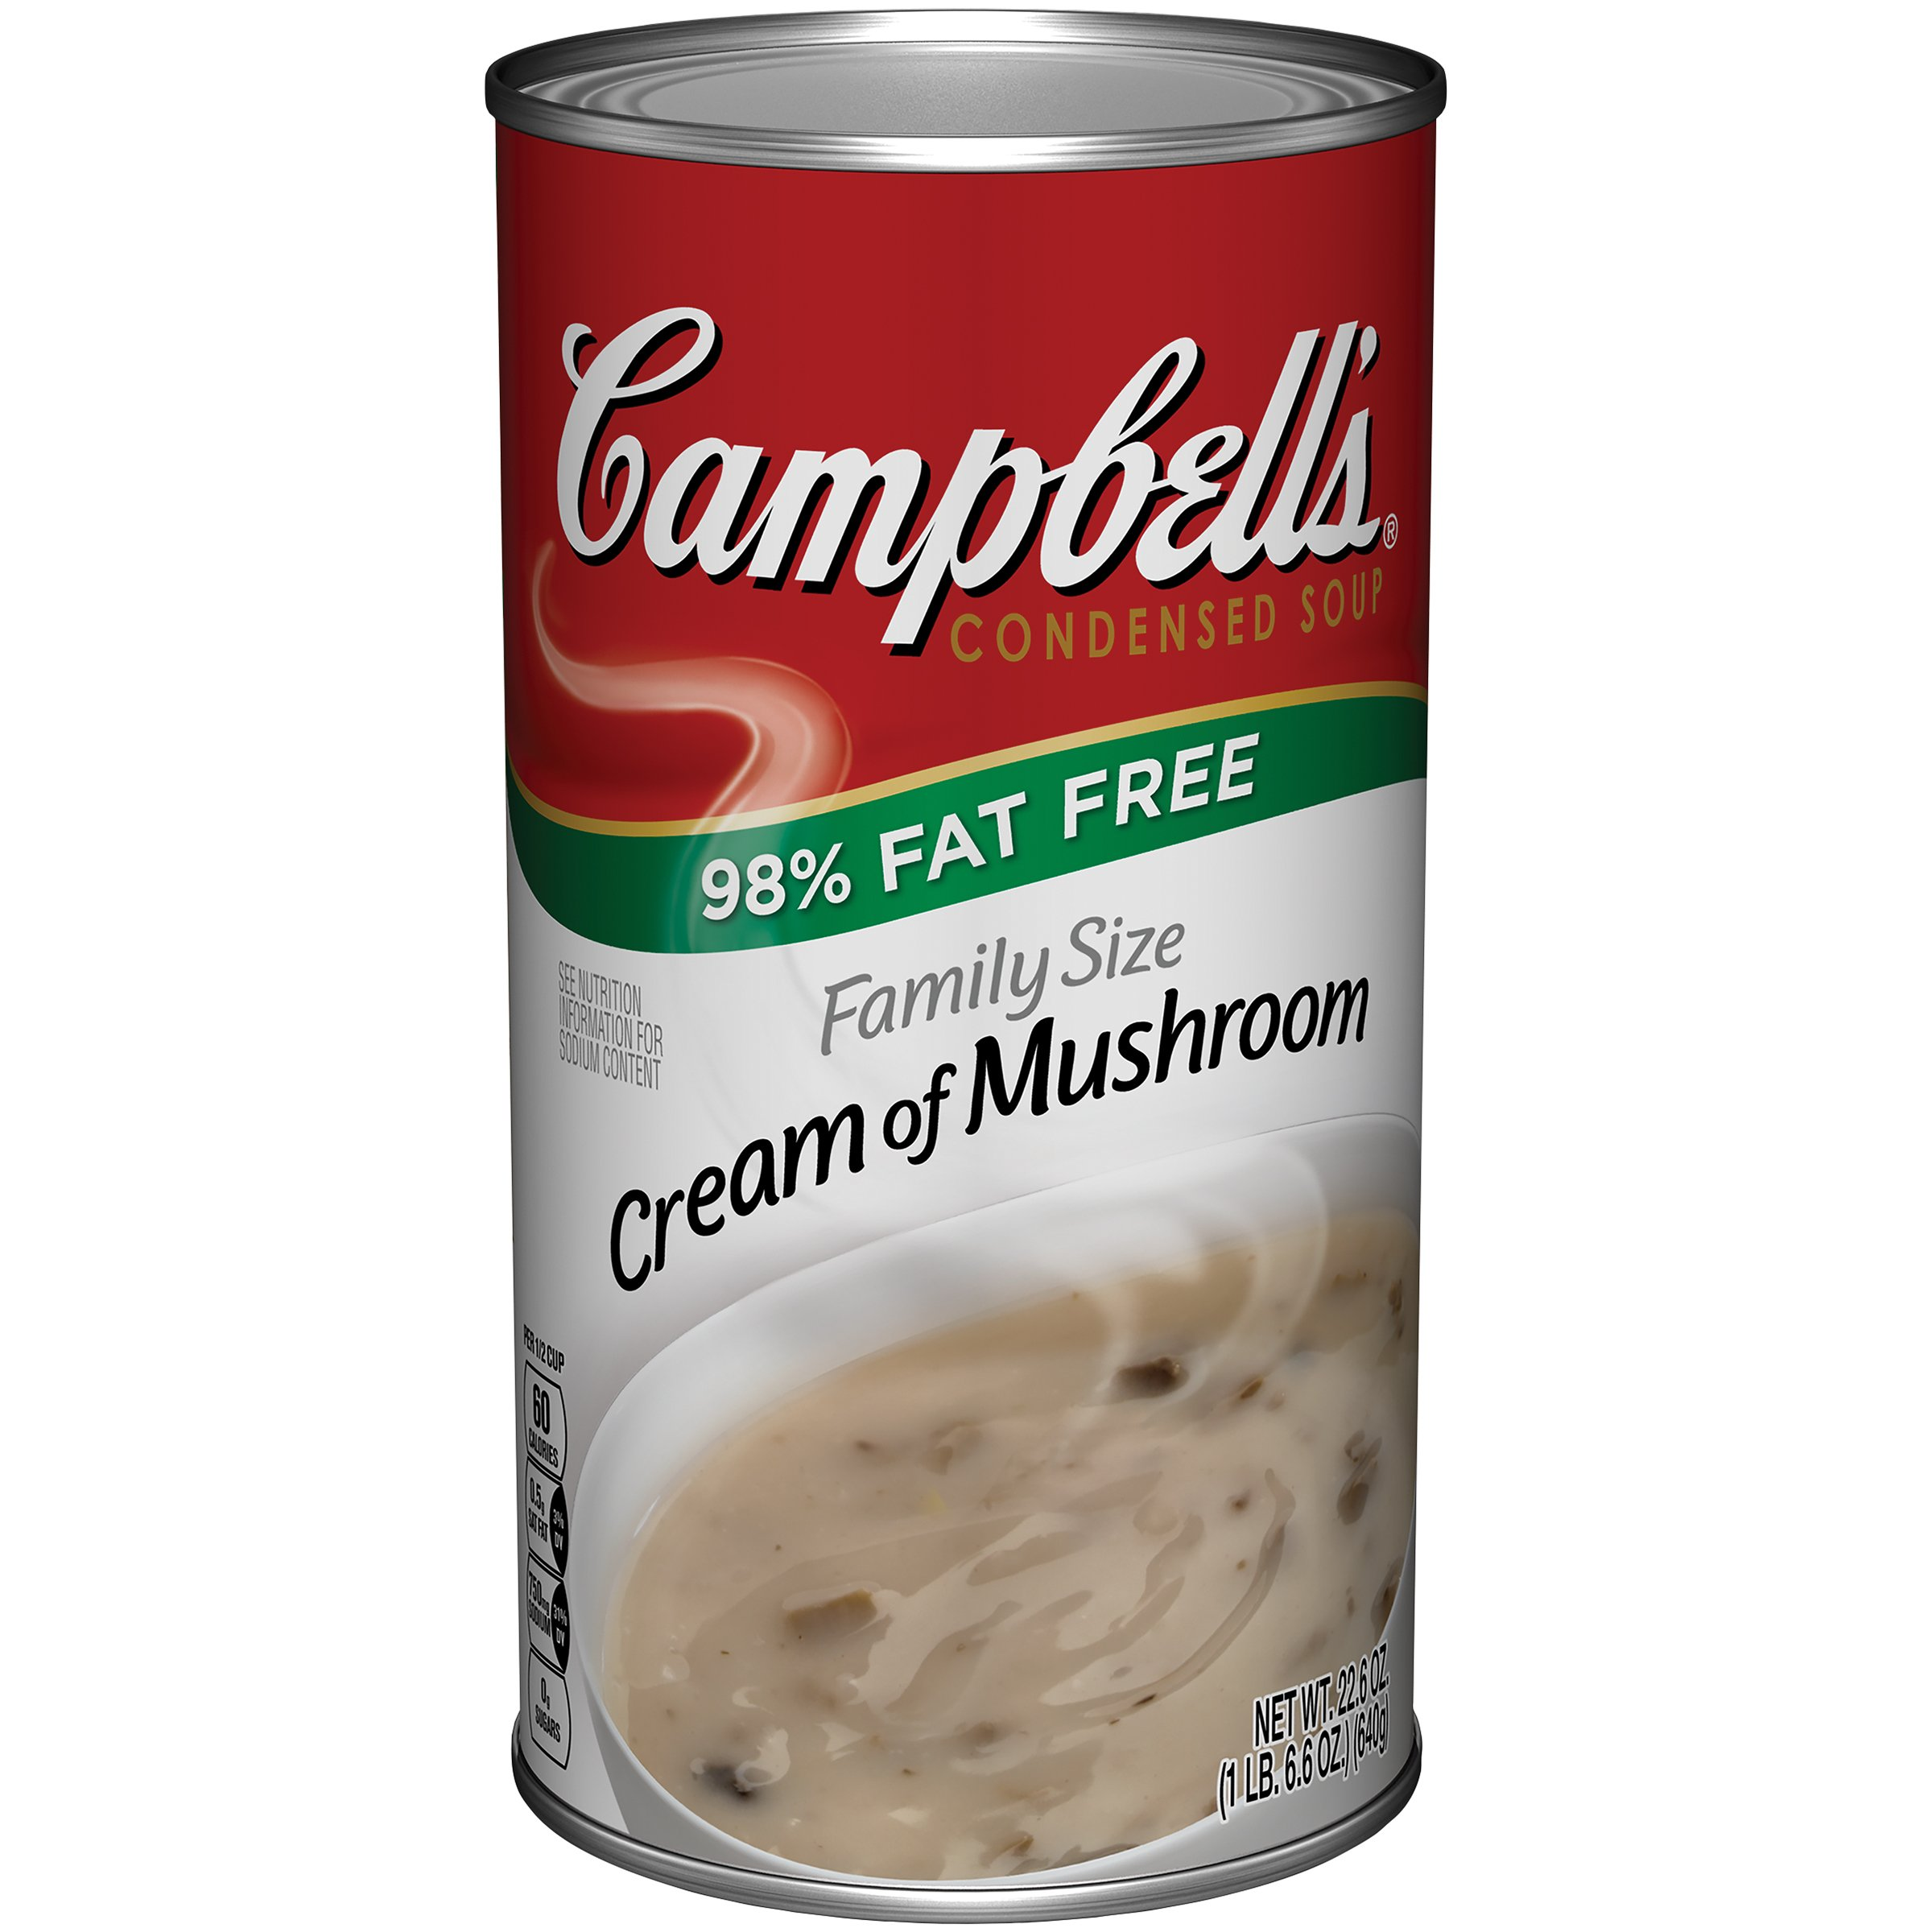 Campbell's 98% Fat Free Condensed Soup, Cream of Mushroom, Family Size, 22.6 oz.